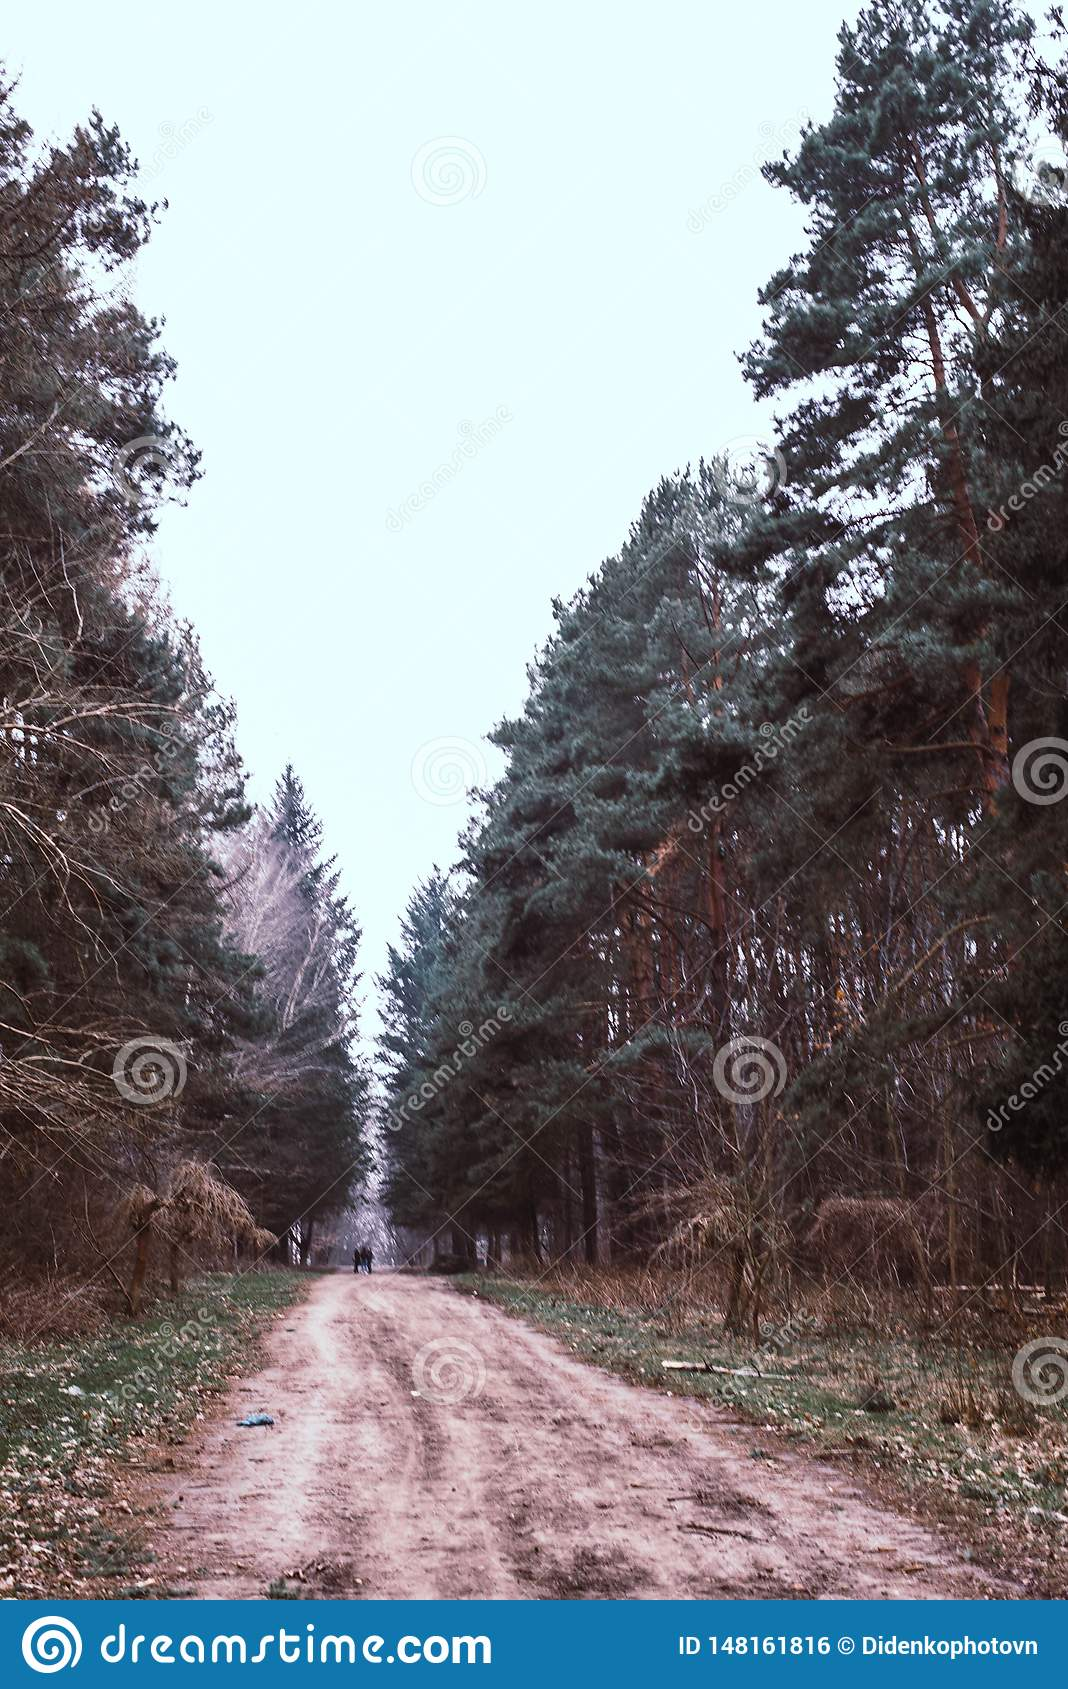 The road is a path in the woods